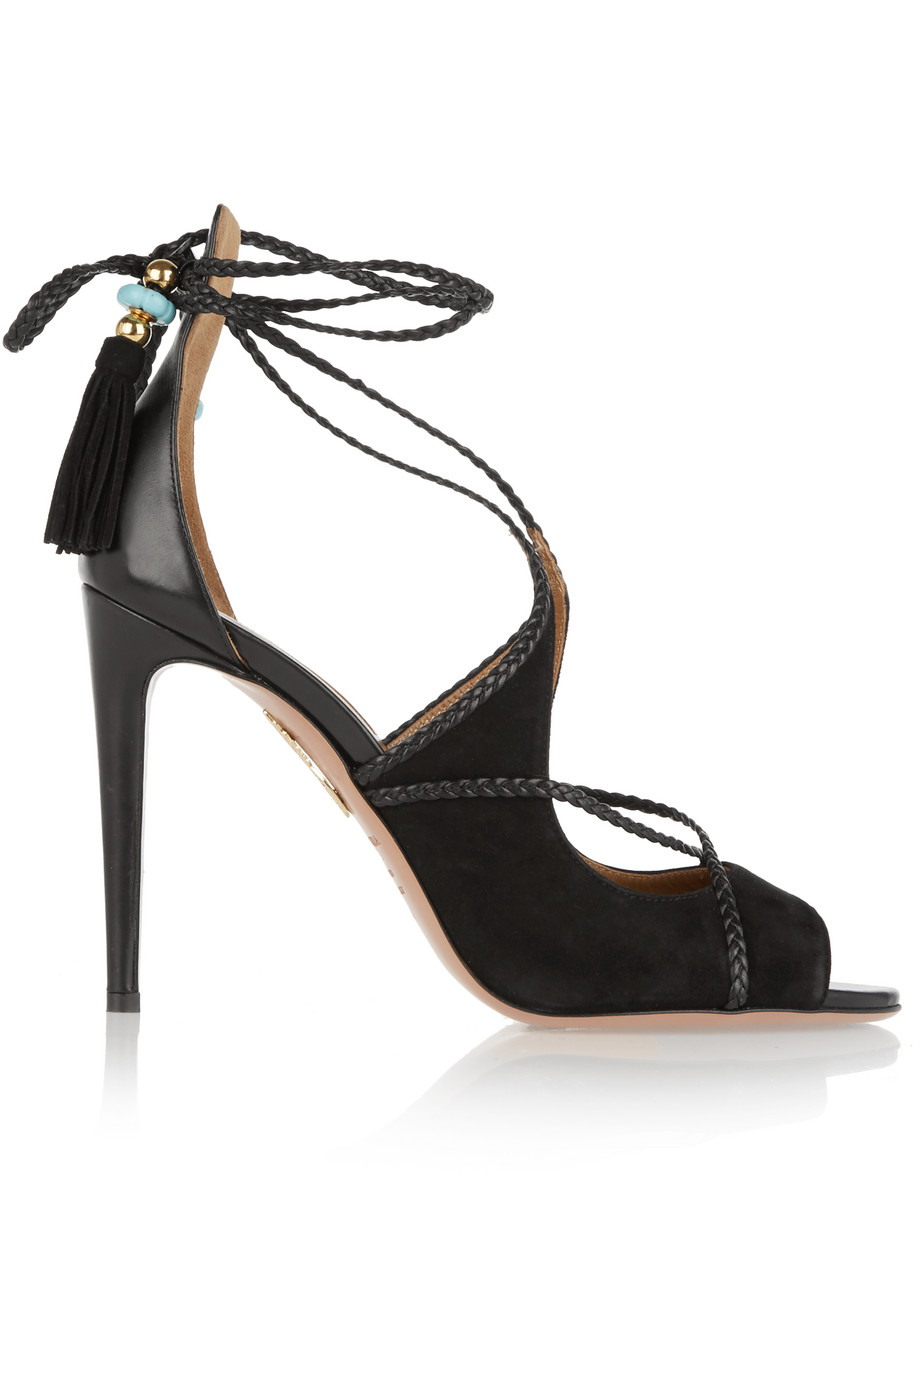 Aquazzura + Poppy Delevingne Hero Lace-Up Suede and Leather Sandals, Black, Women's US Size: 6.5, Size: 37